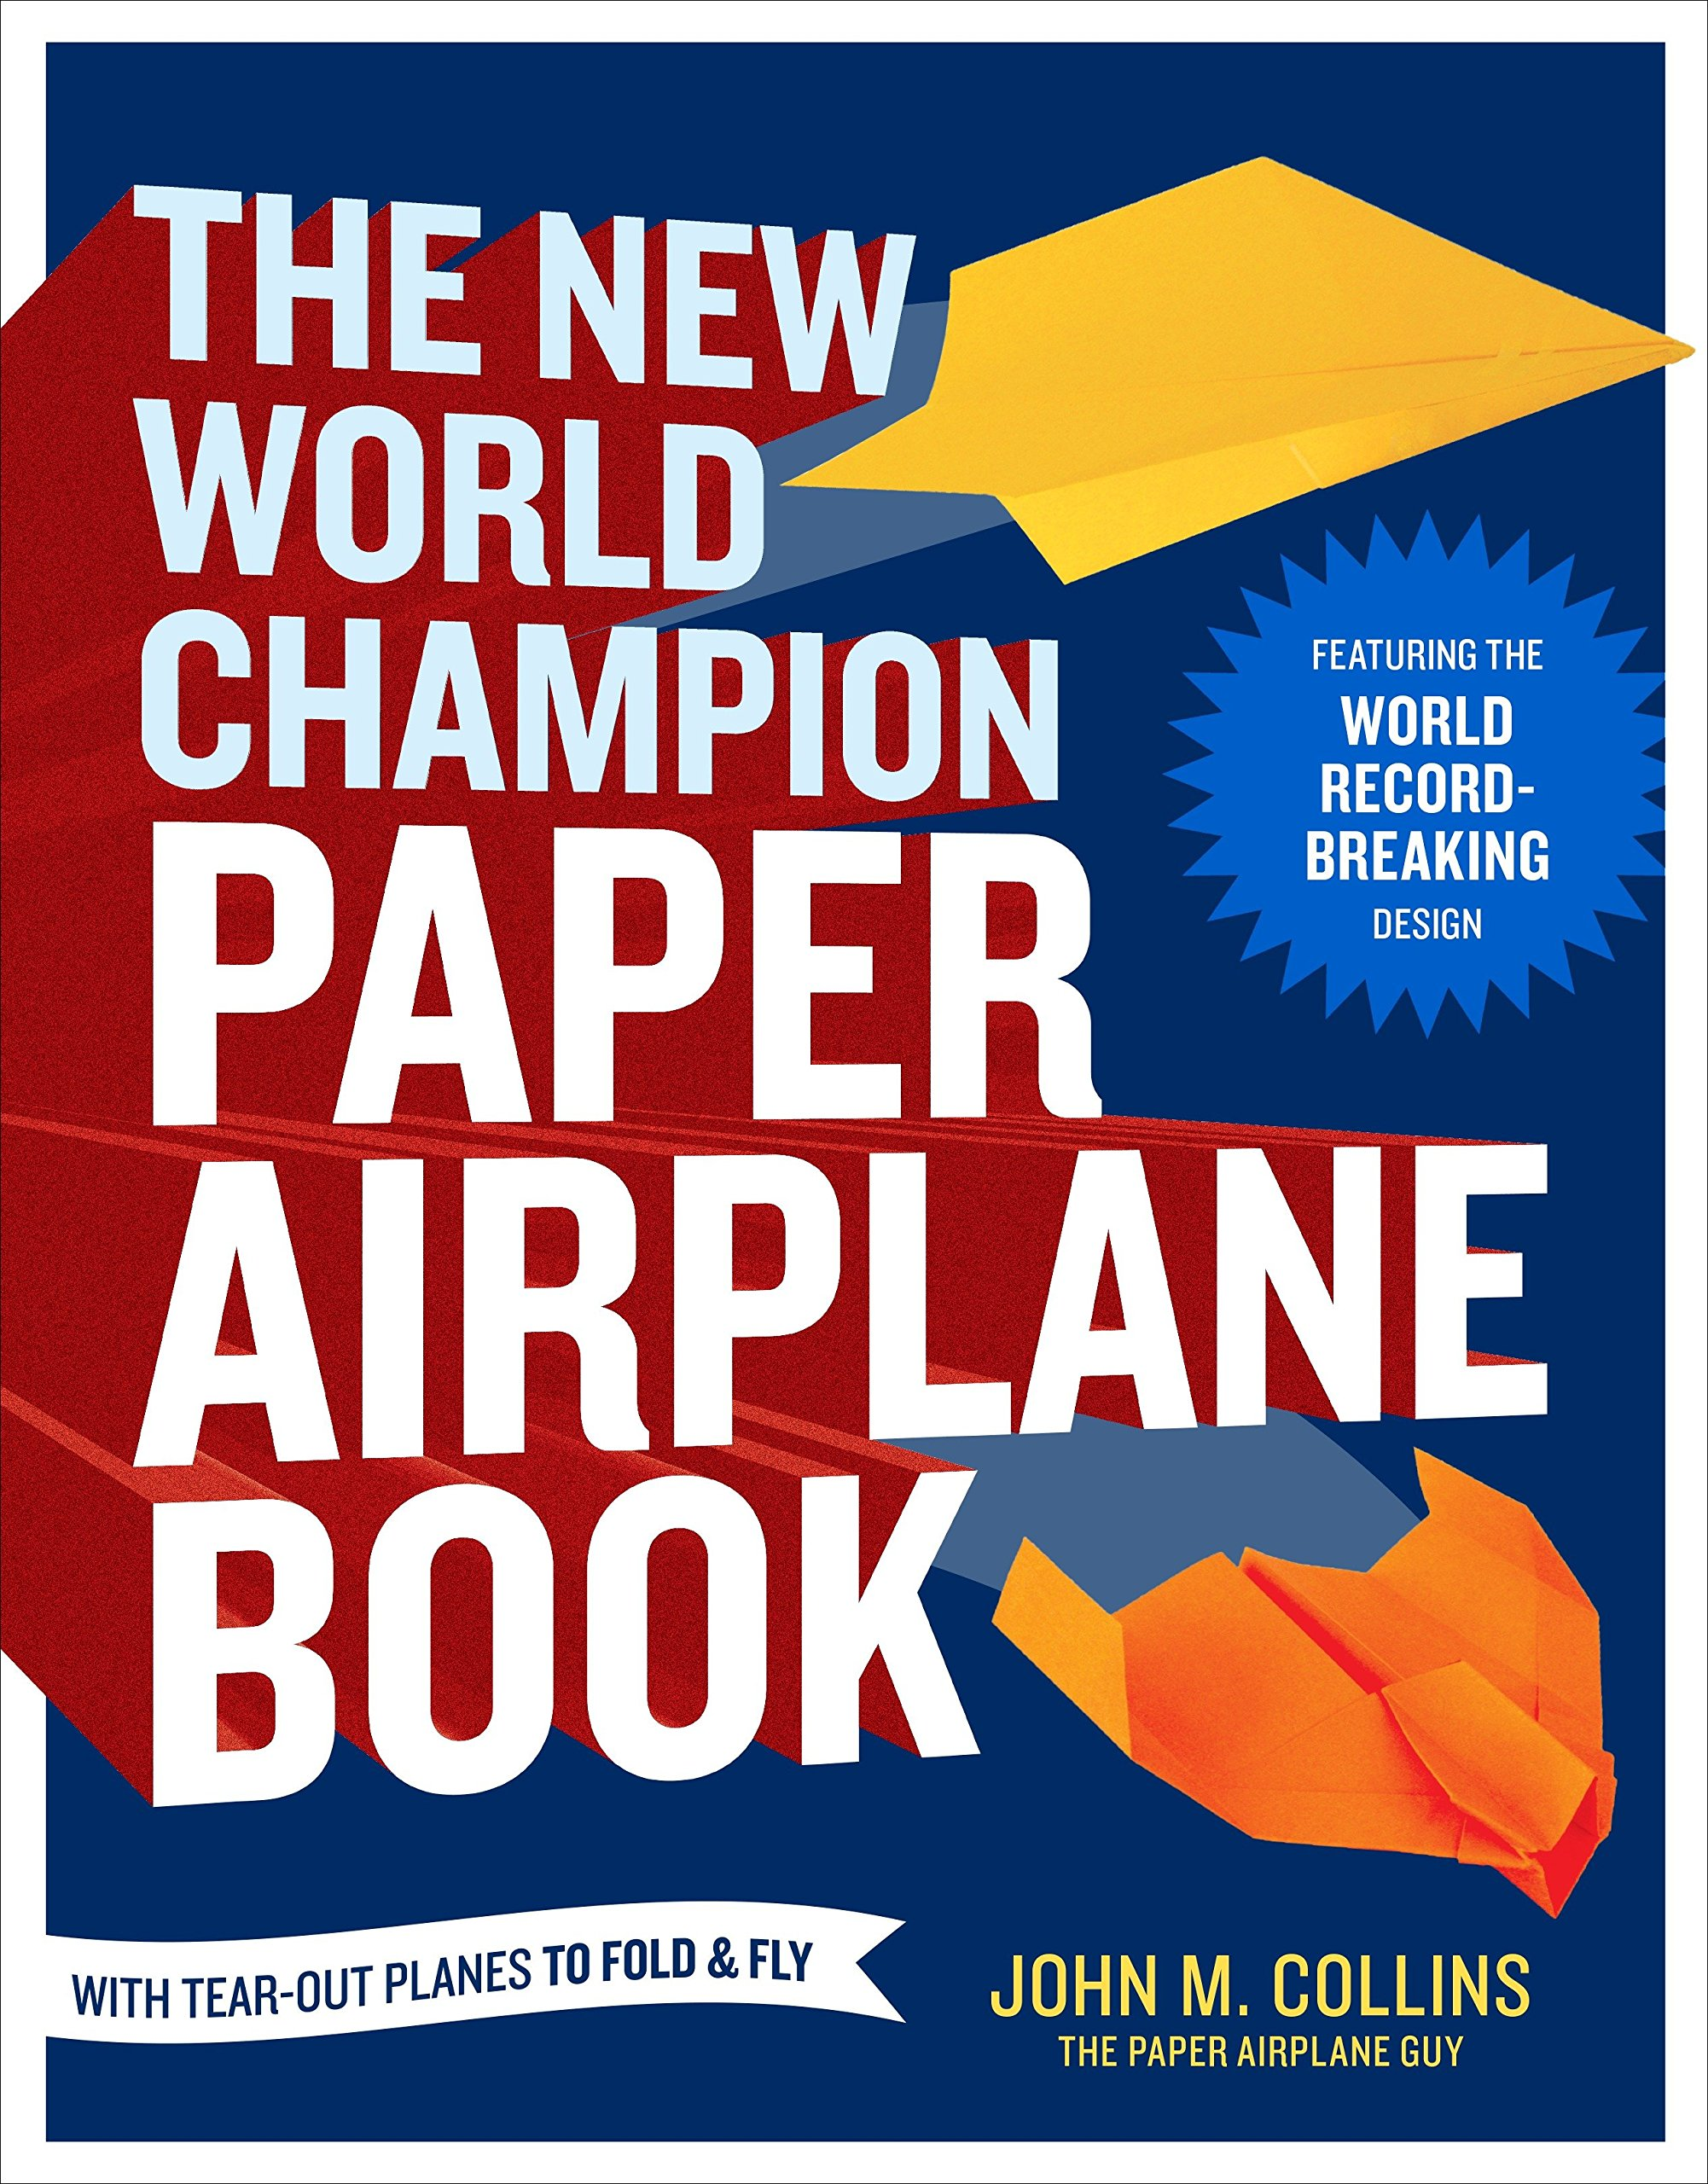 the new world champion paper airplane book featuring the world